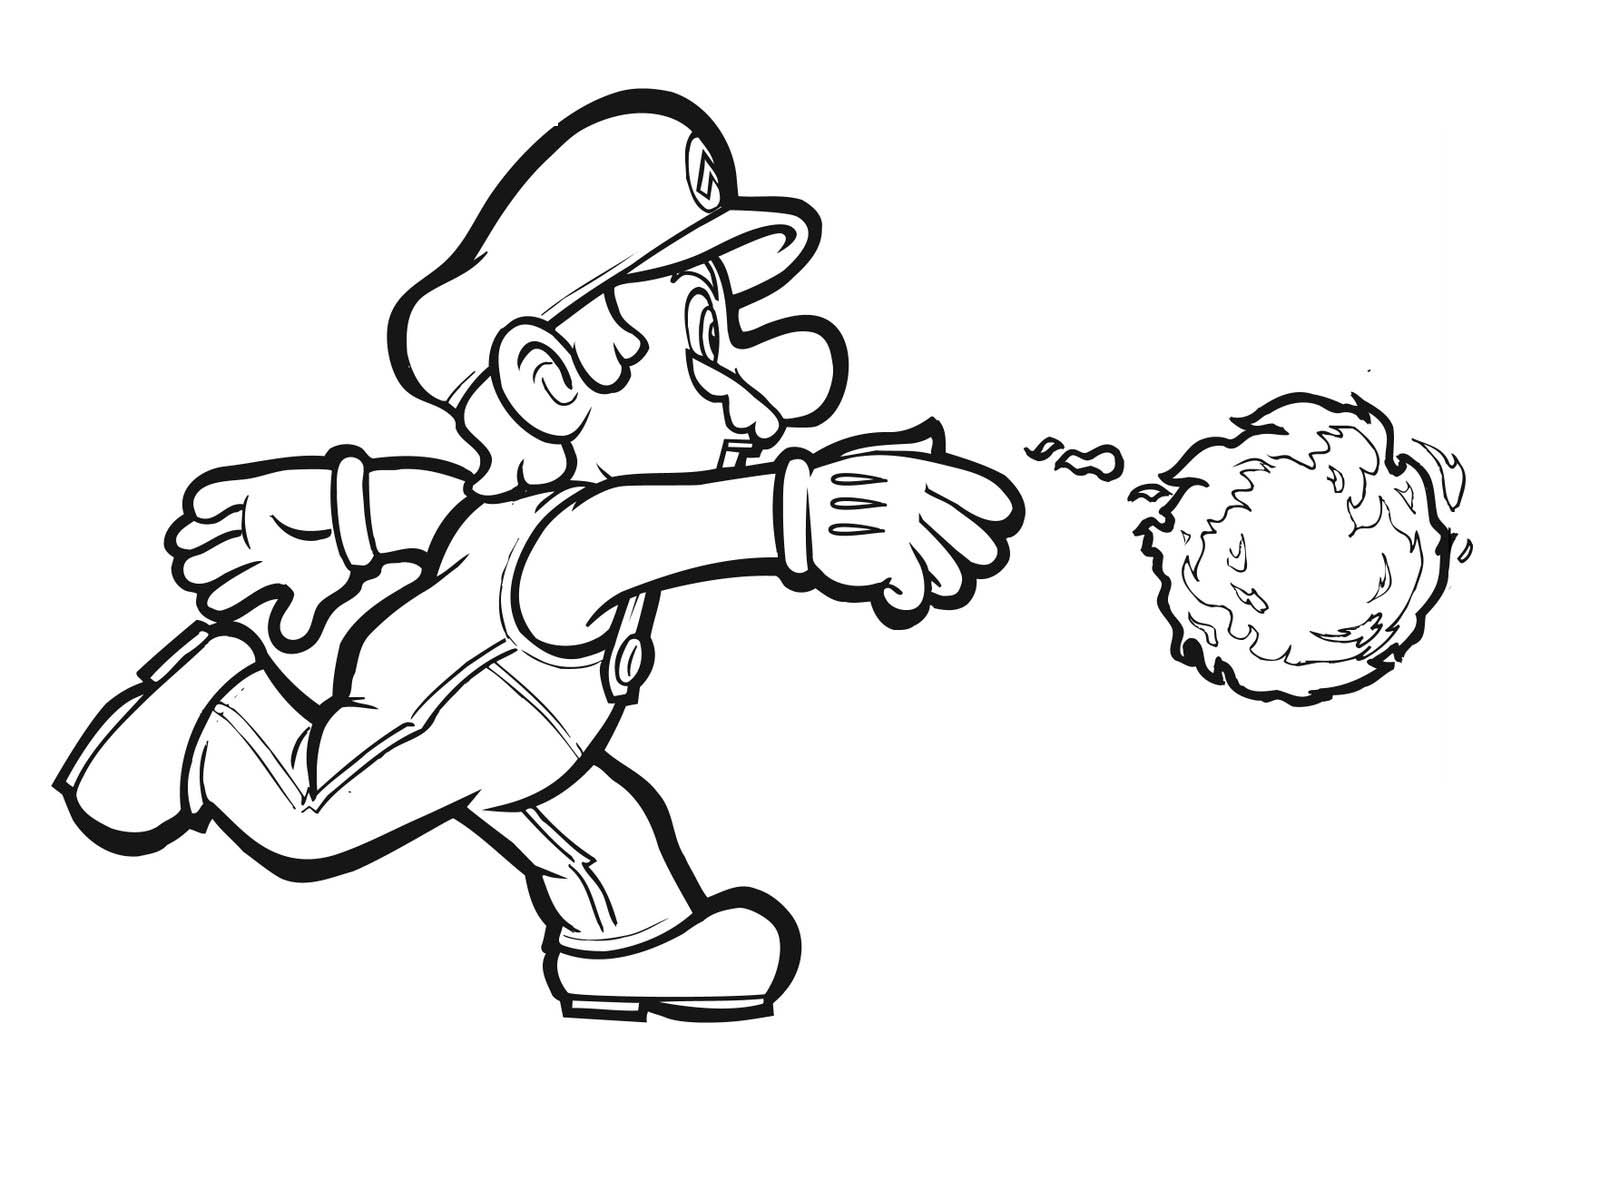 mega mario coloring pages - photo#13